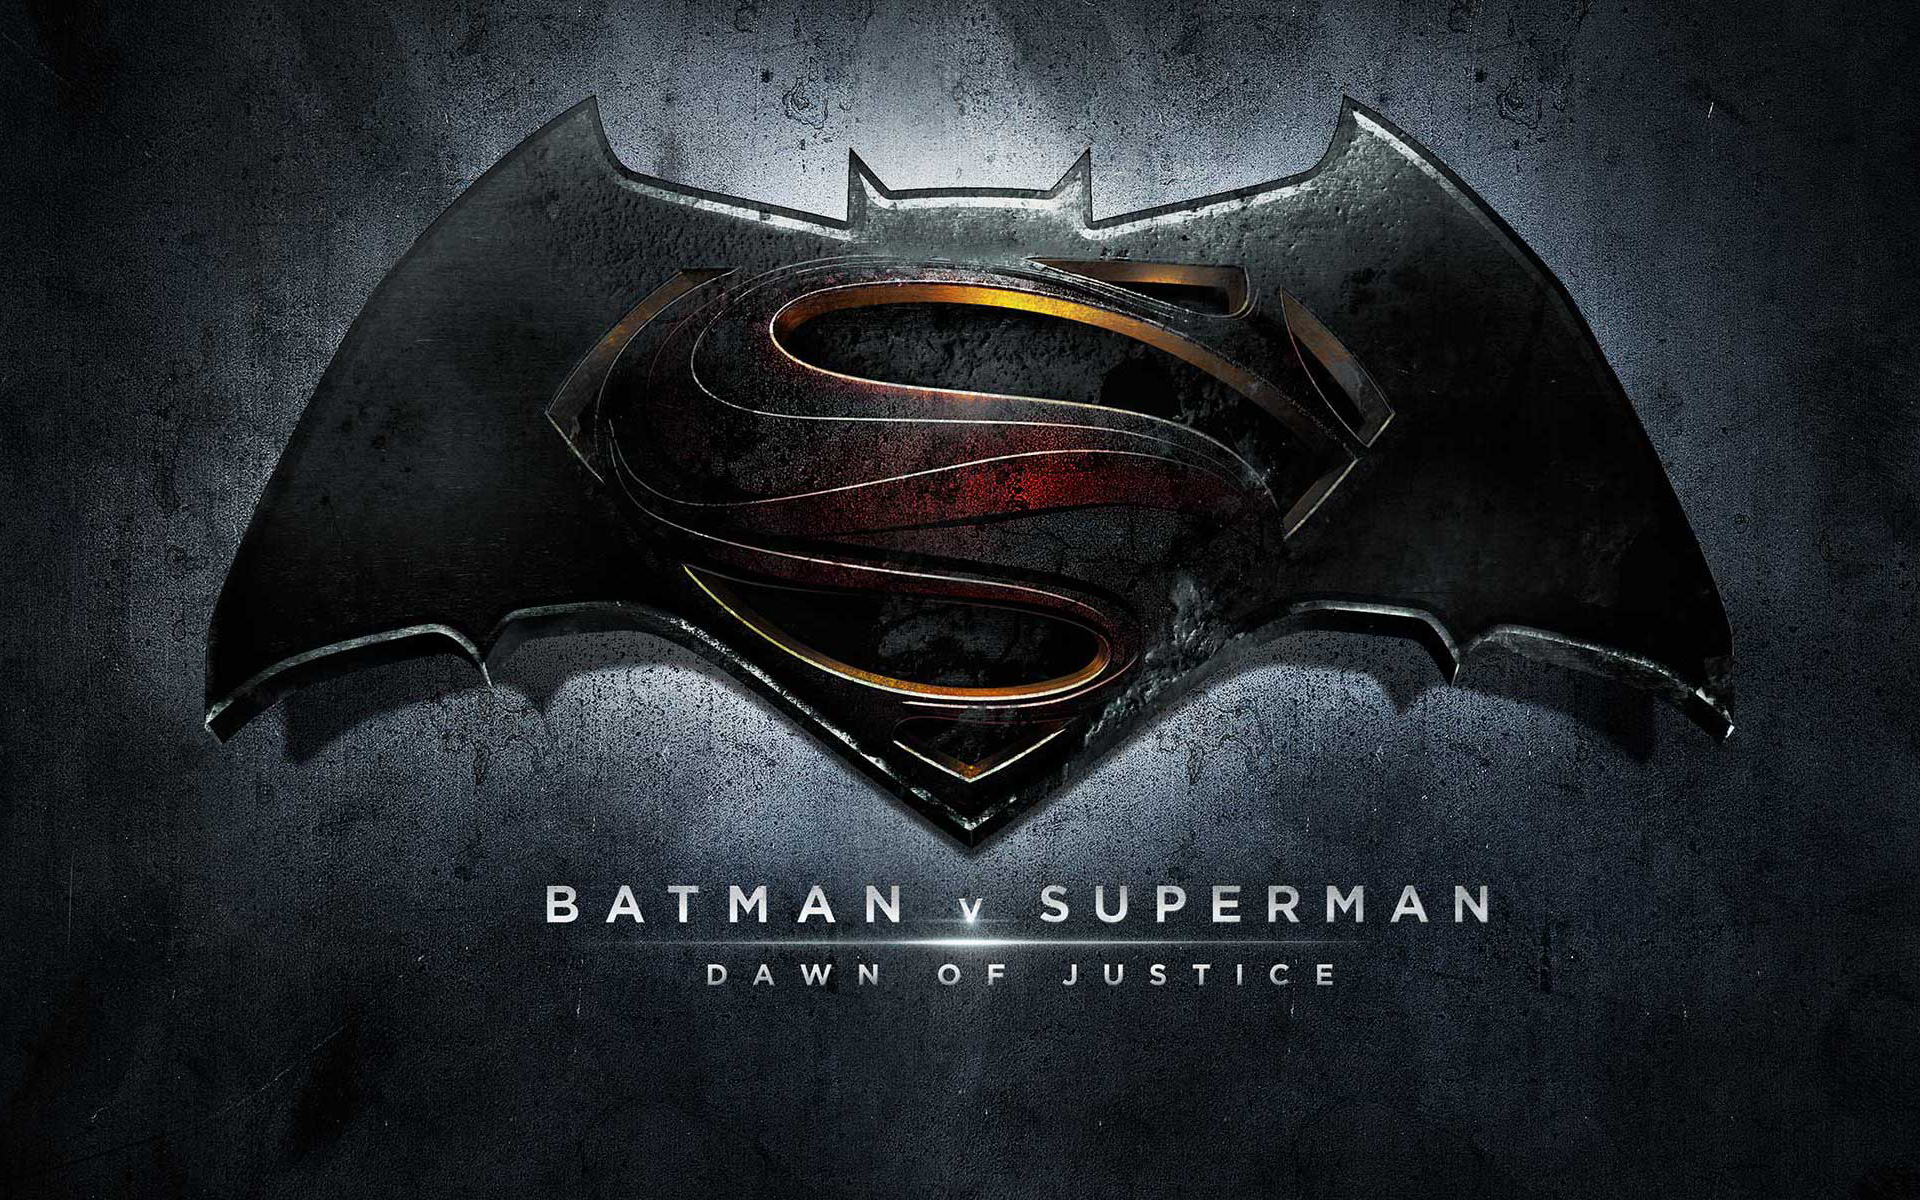 Download Batman Vs Superman Dawn Of Justice Logo HD Wallpaper 6670 1920x1200